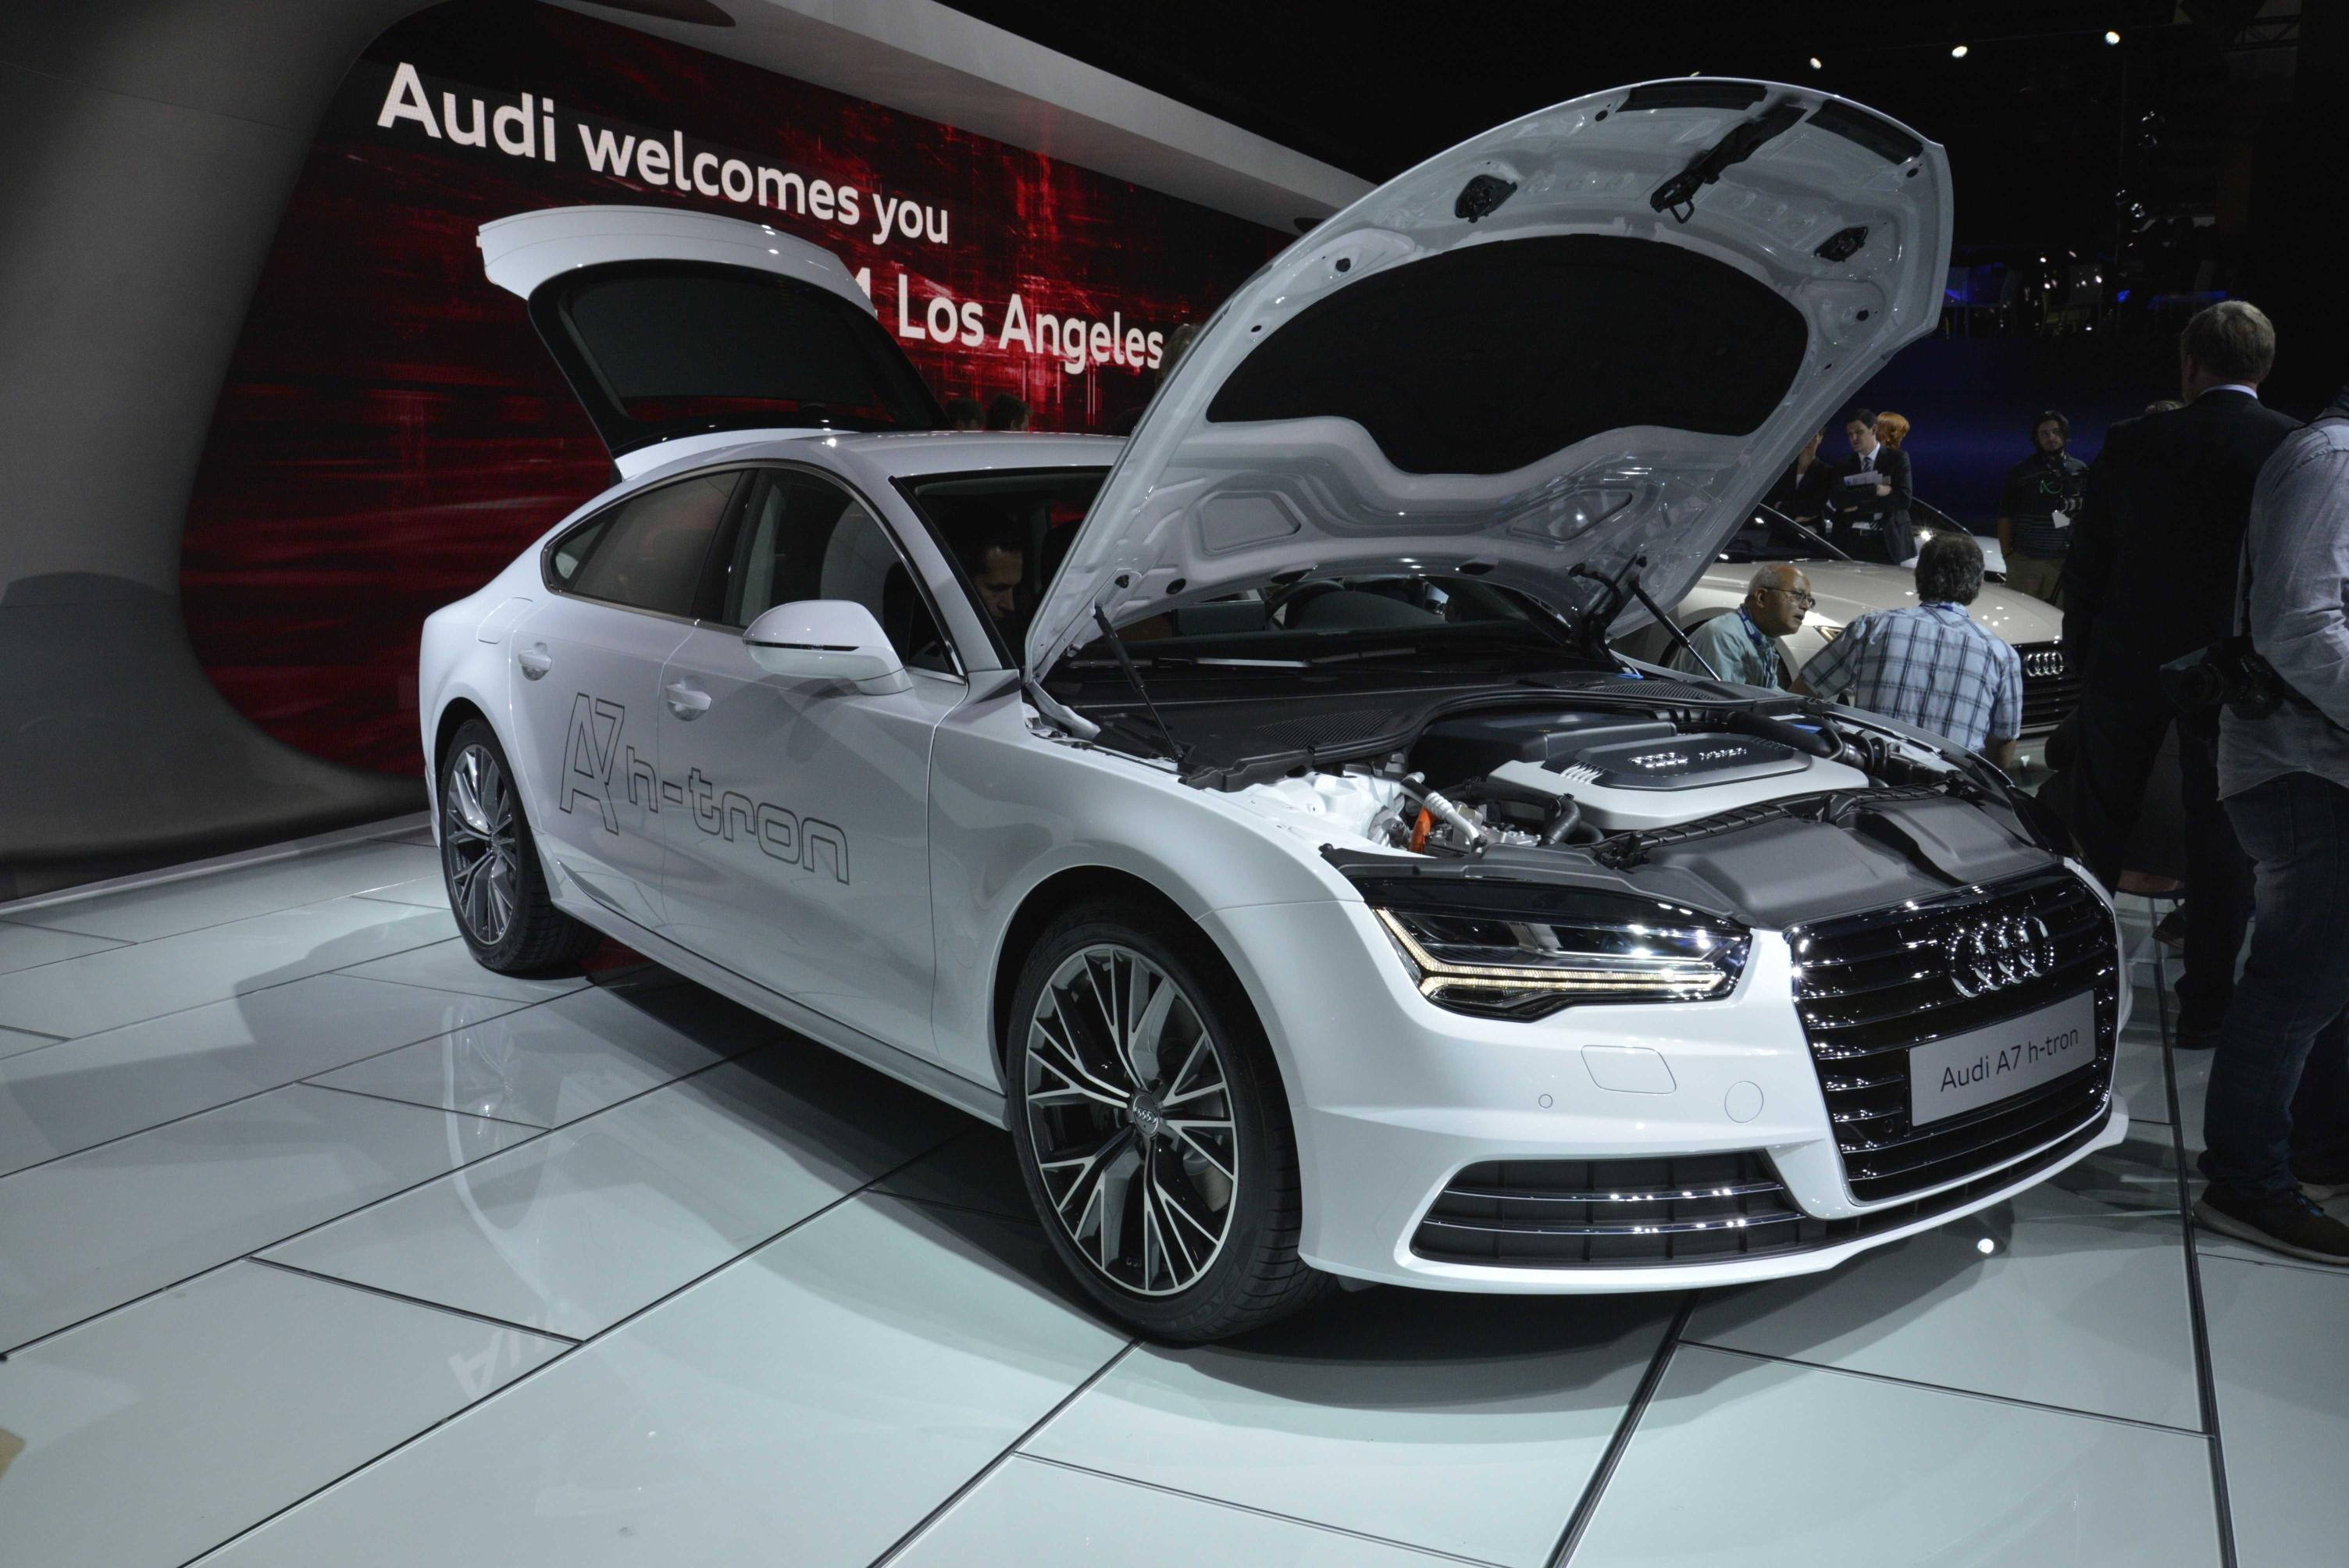 Audi And Porsche Are Recalling Almost 300,000 Vehicles Sold In the ...